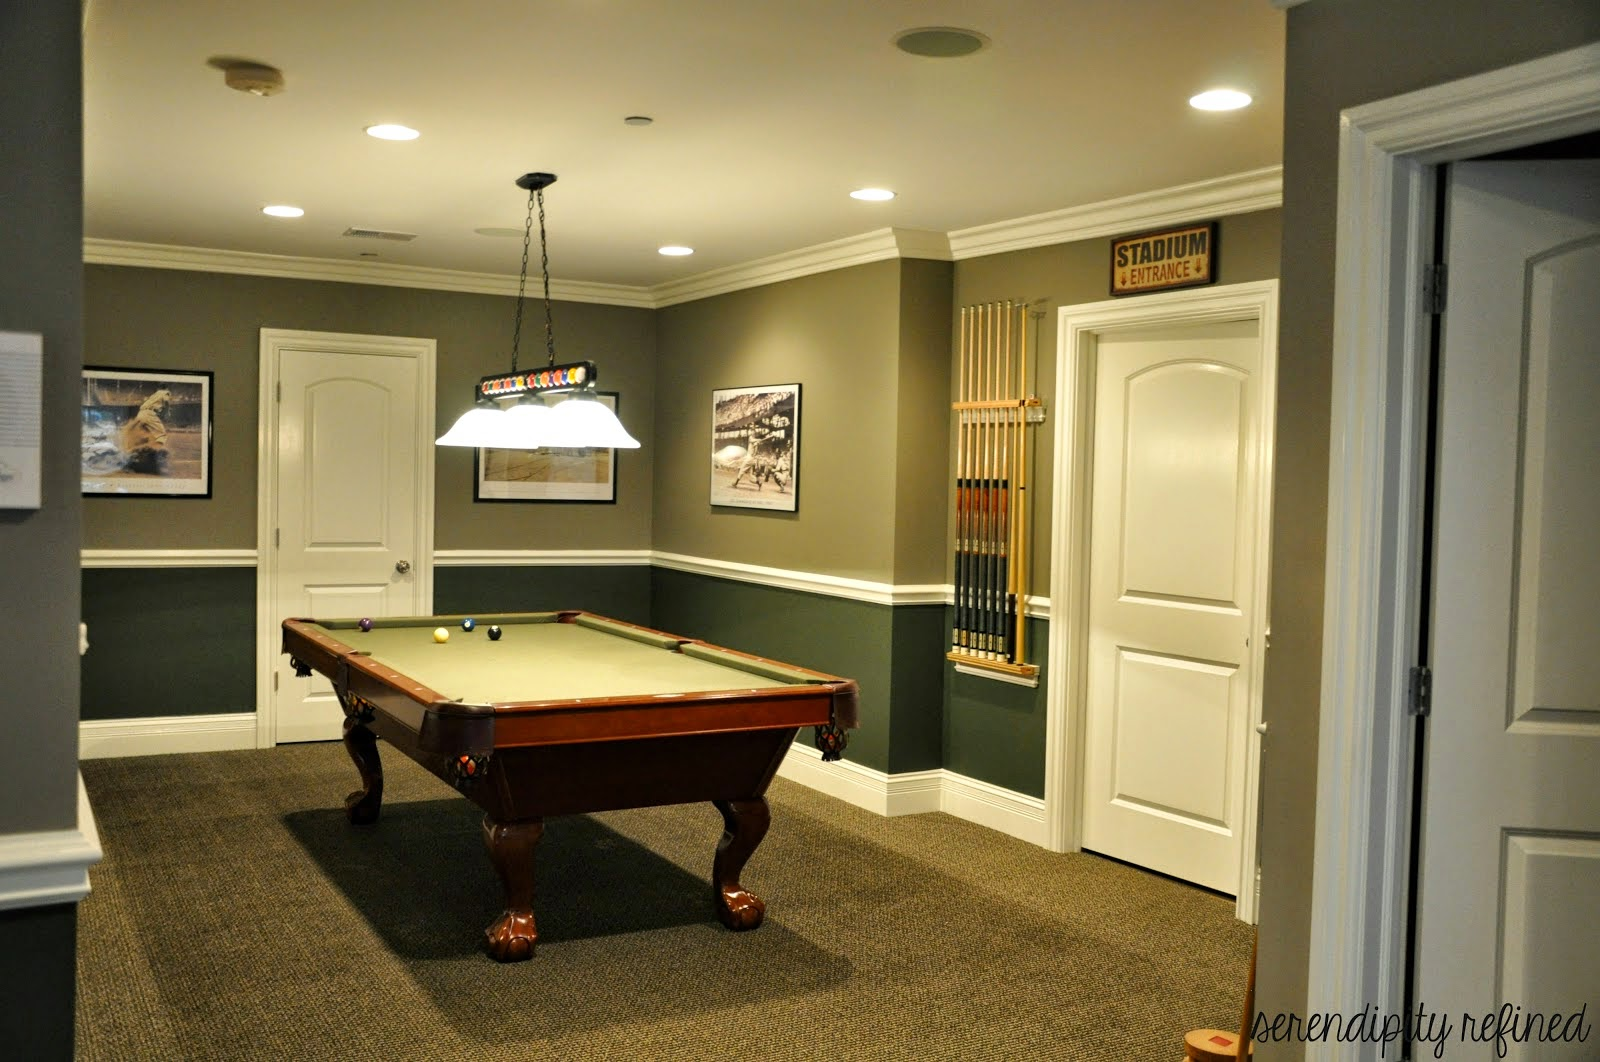 Ideas For Pool Table Room 30 trendy billiard room design ideas Home Pool Table Room Ideas Home Ideas